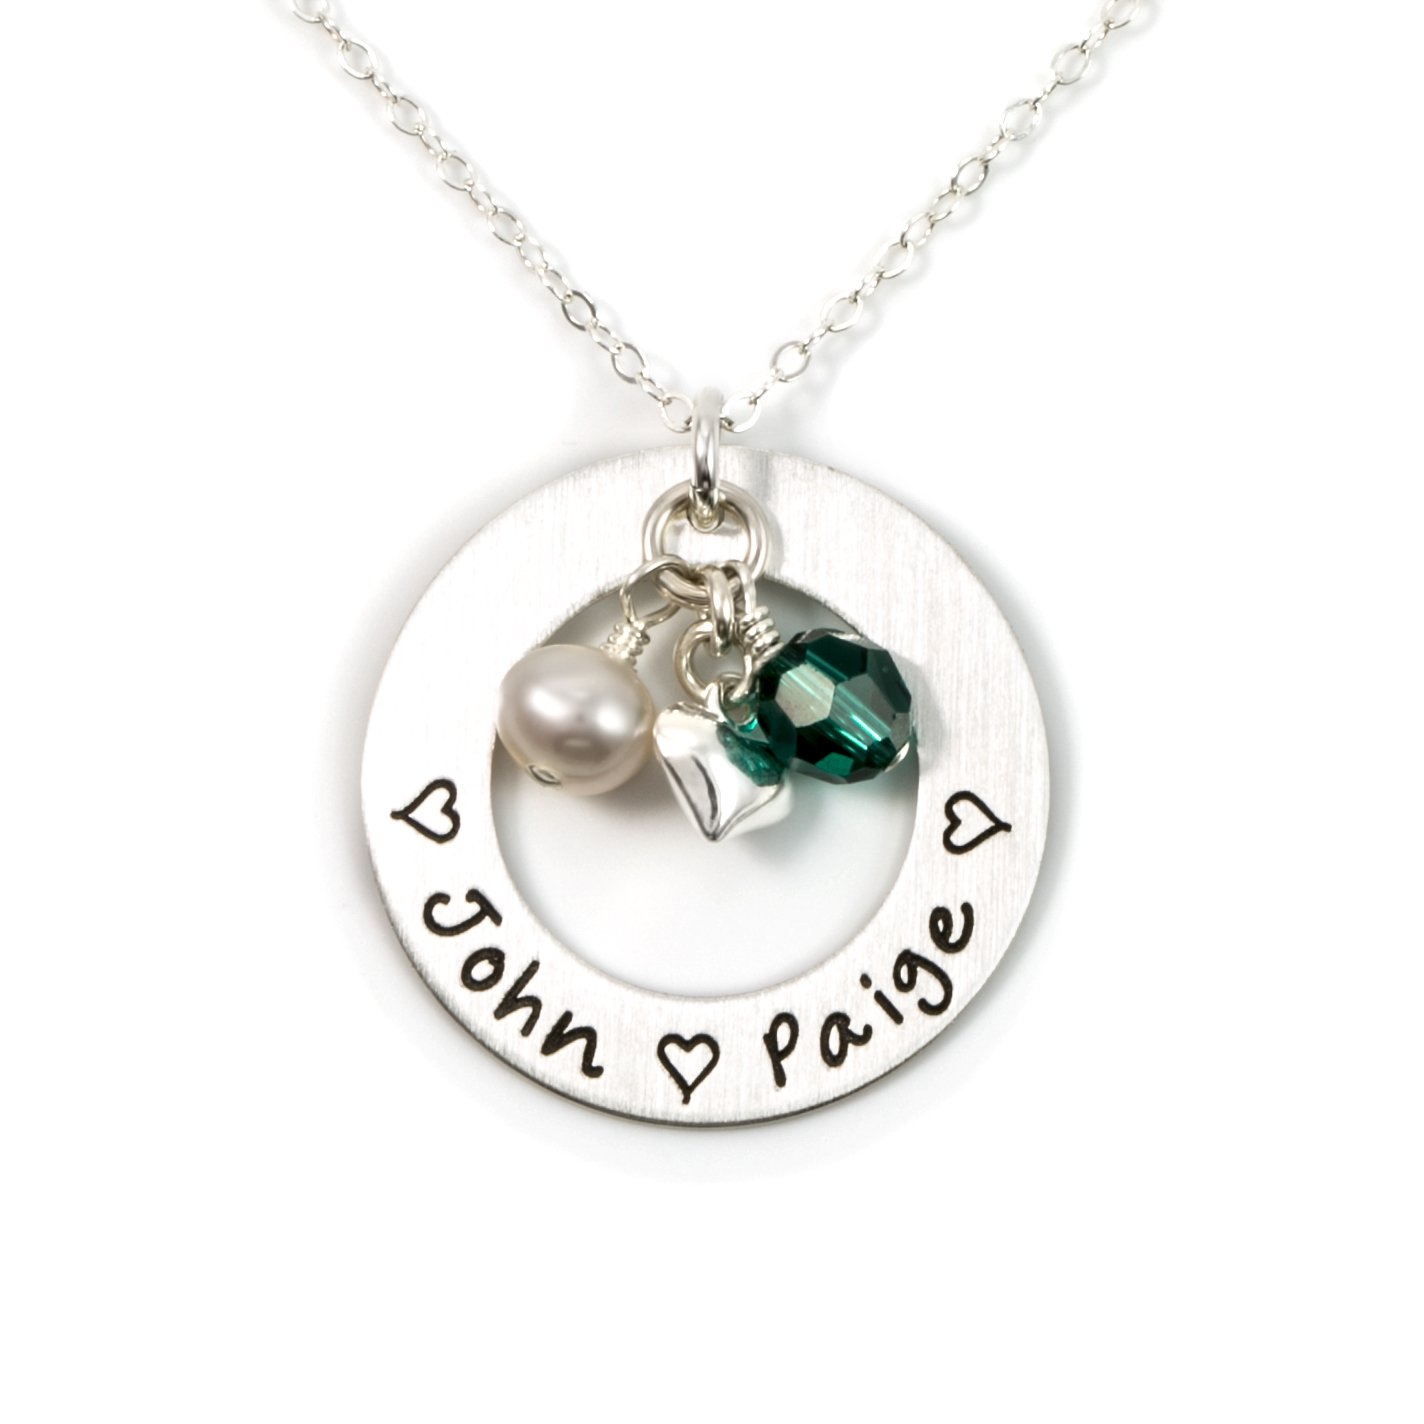 AJ's Collection Love Display with Personalized Sterling Silver Round Washer, Hand Finished. Includes up to 4 Swarovski Birthstones or Pearls, and a Choice of Sterling Silver Chain for Her